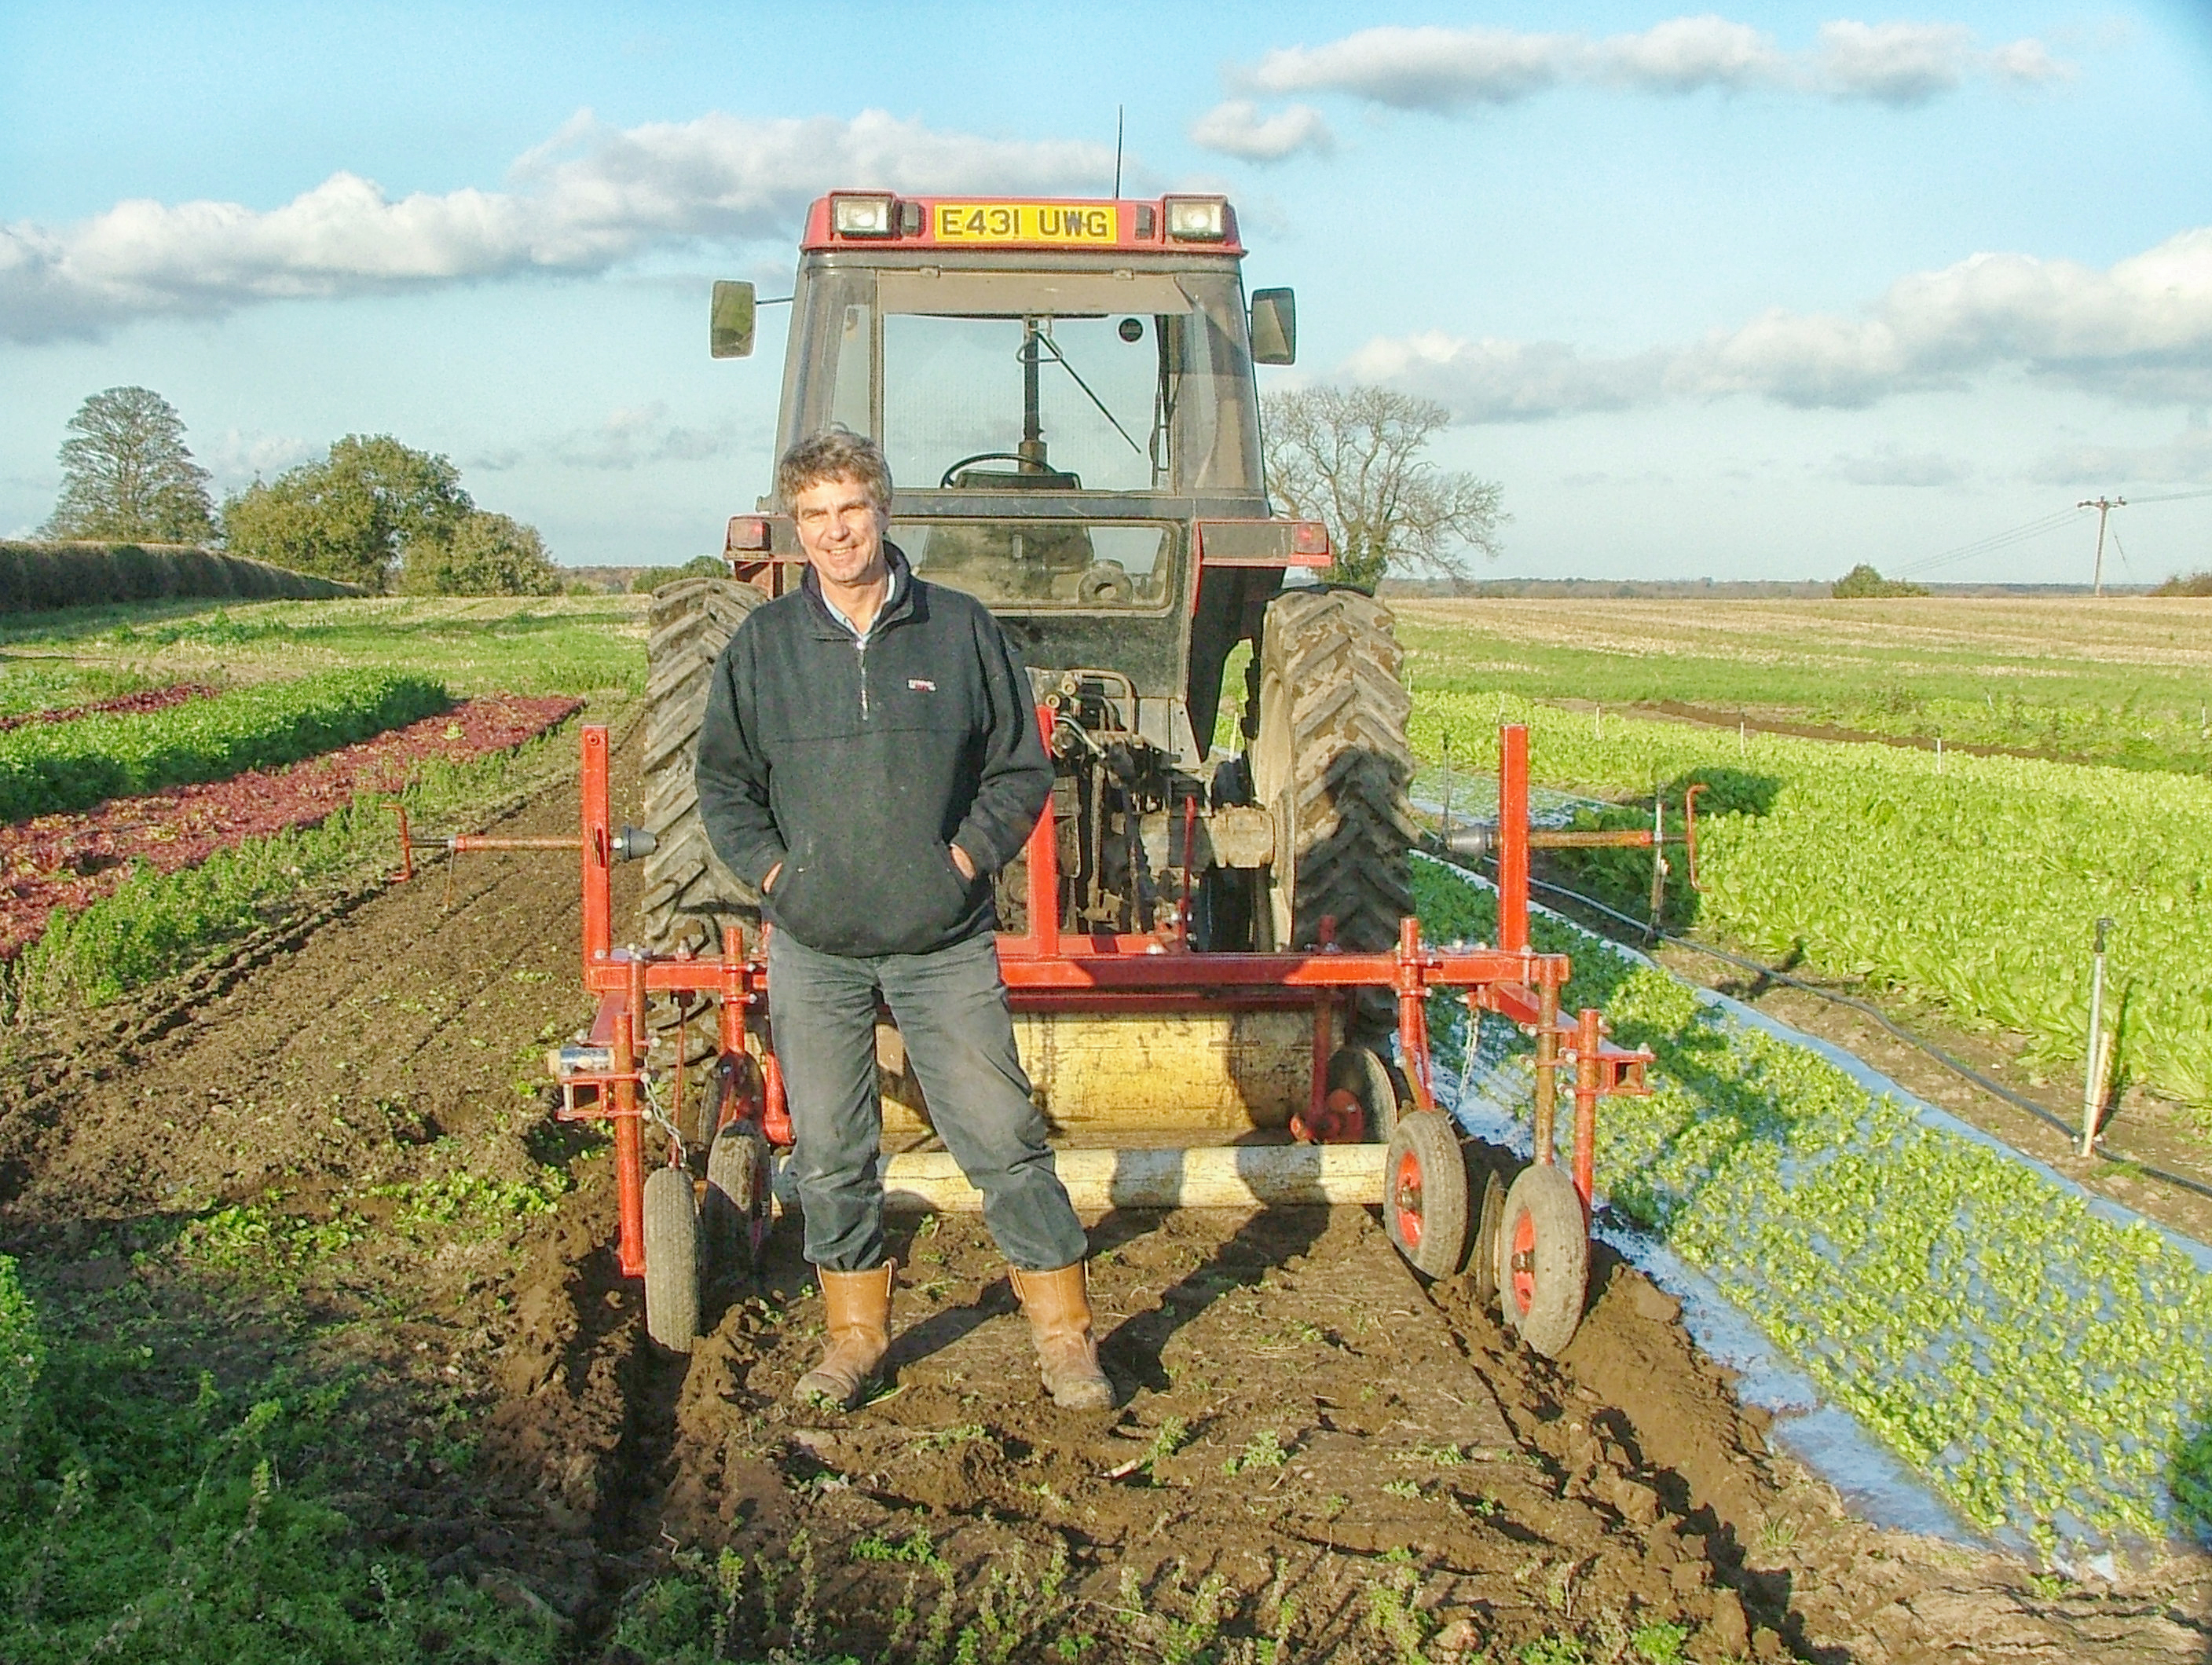 Tadley inventor hopes to solve farming problem